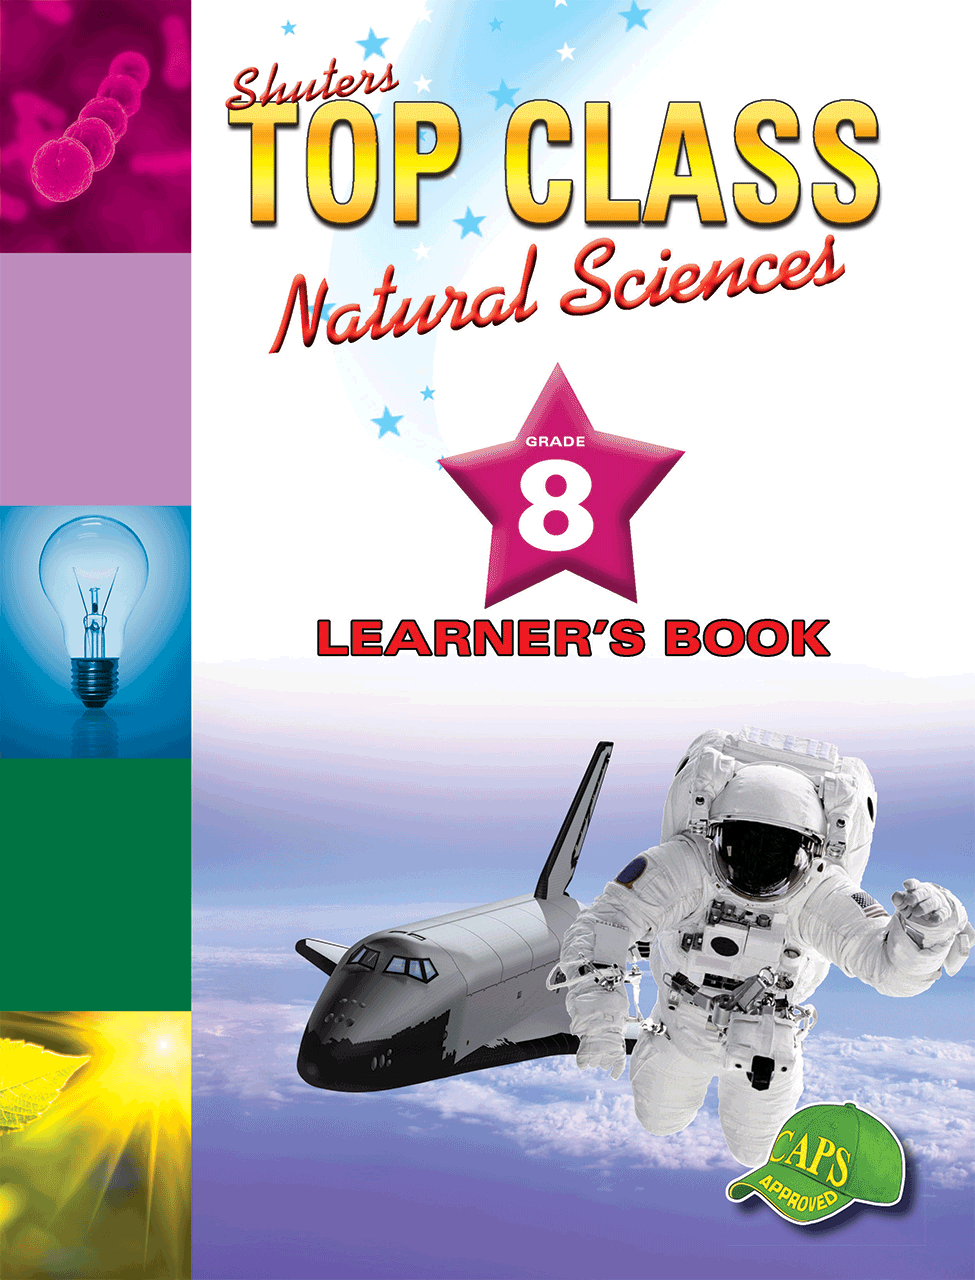 hight resolution of TOP CLASS NATURAL SCIENCES GRADE 8 LEARNER'S BOOK   WCED ePortal